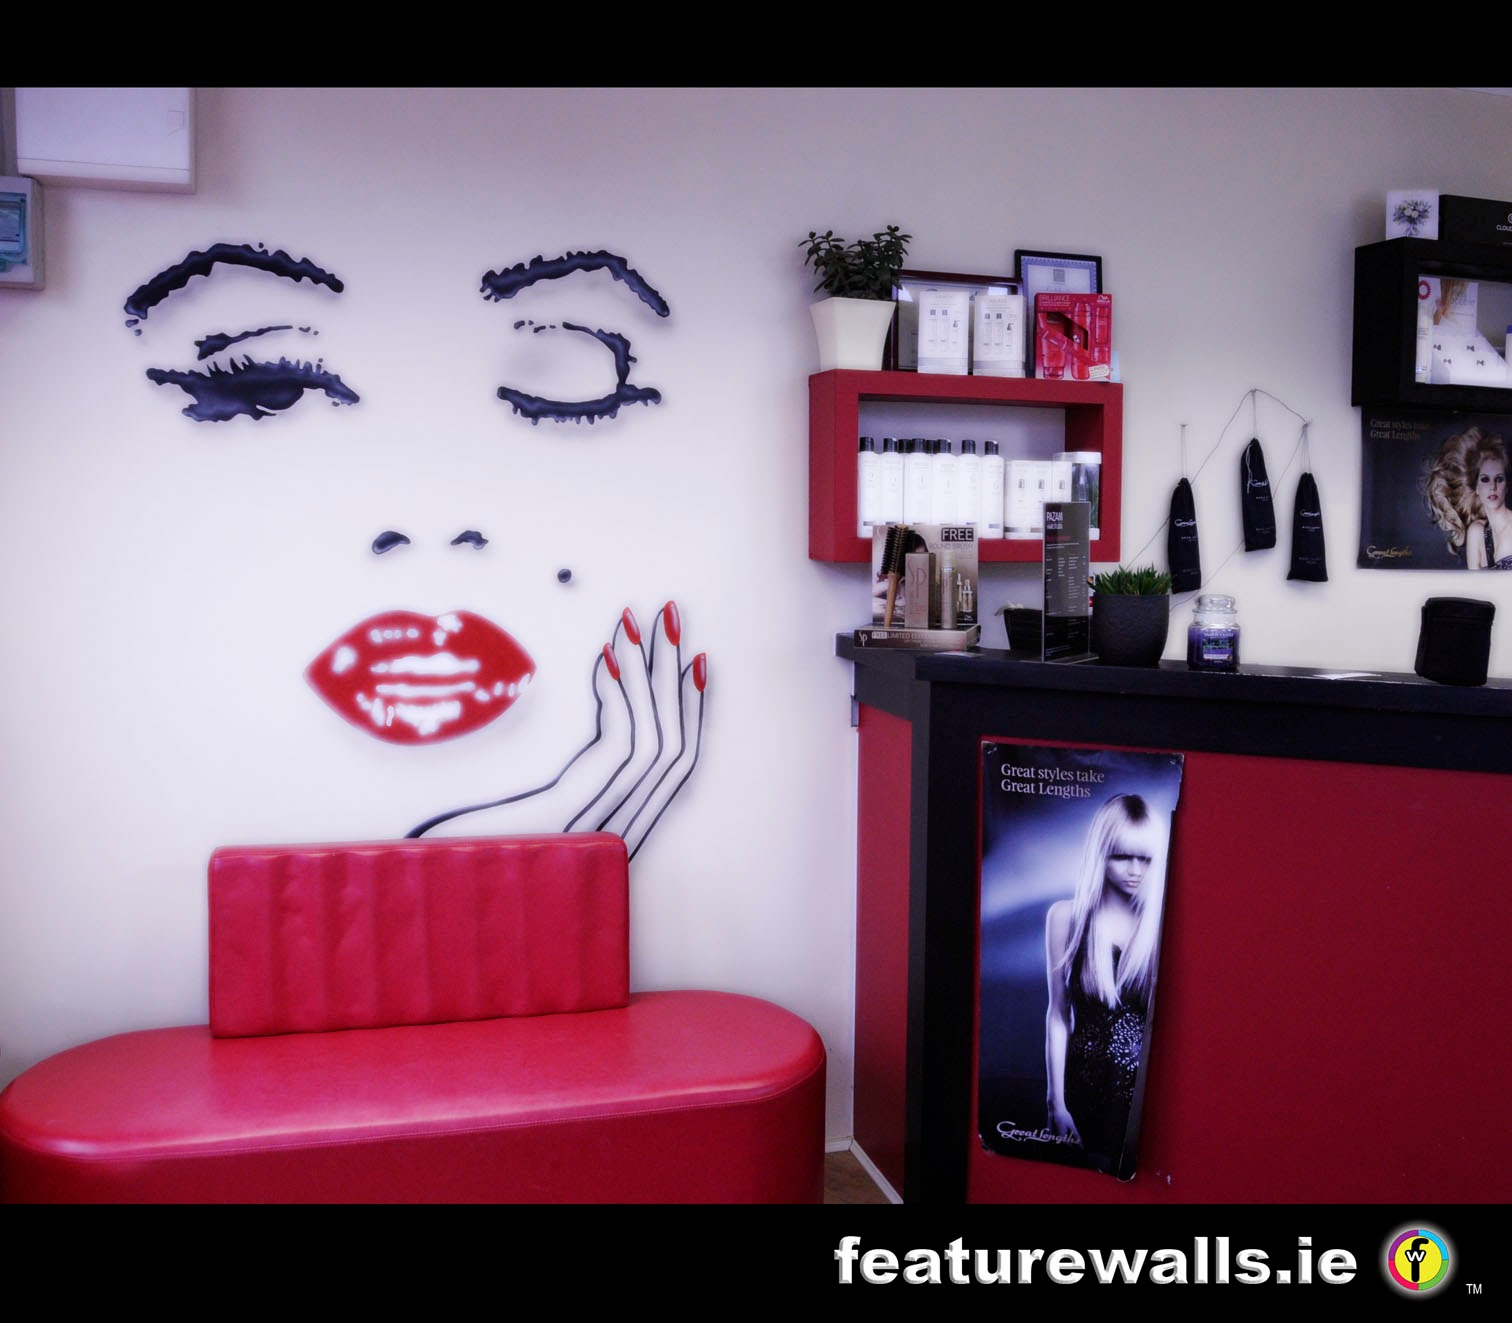 Mural Painting Professionals Featurewalls.ie: HAIR AND